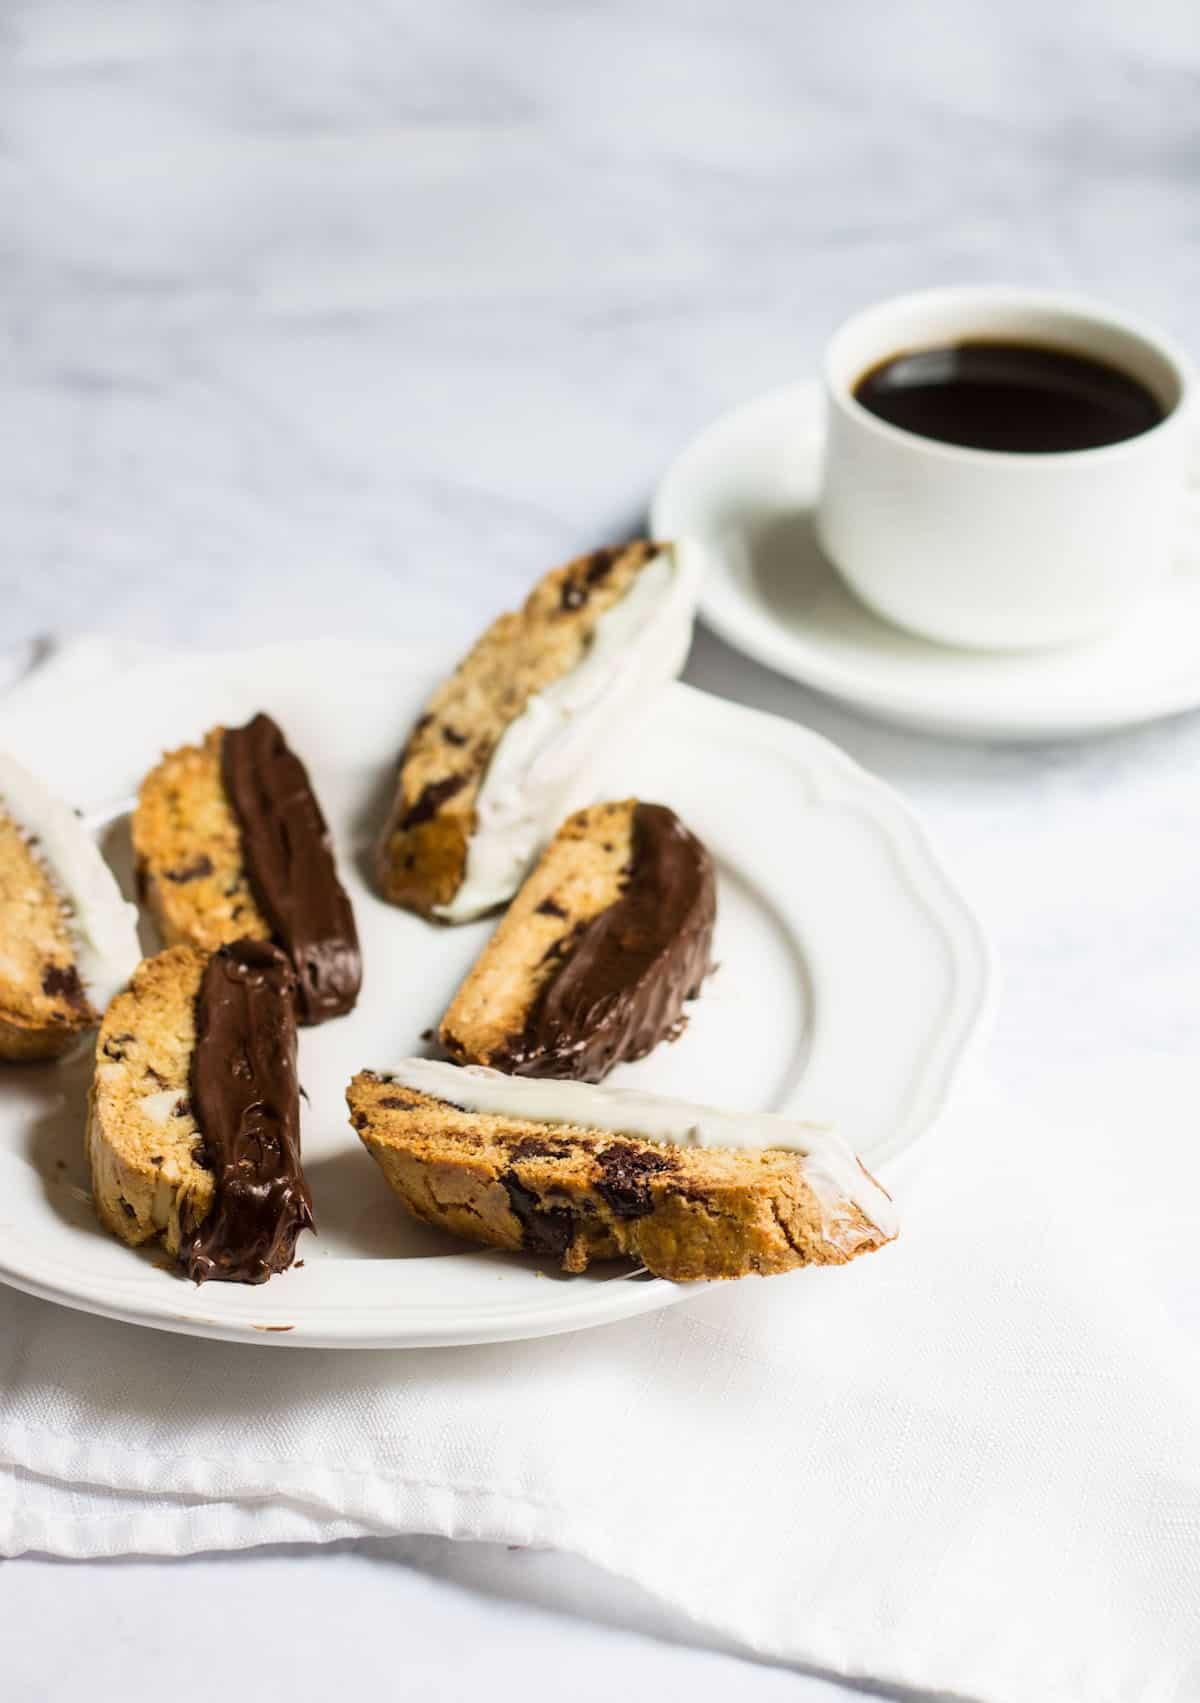 Chocolate-Dipped Almond Biscotti - Mon Petit Four